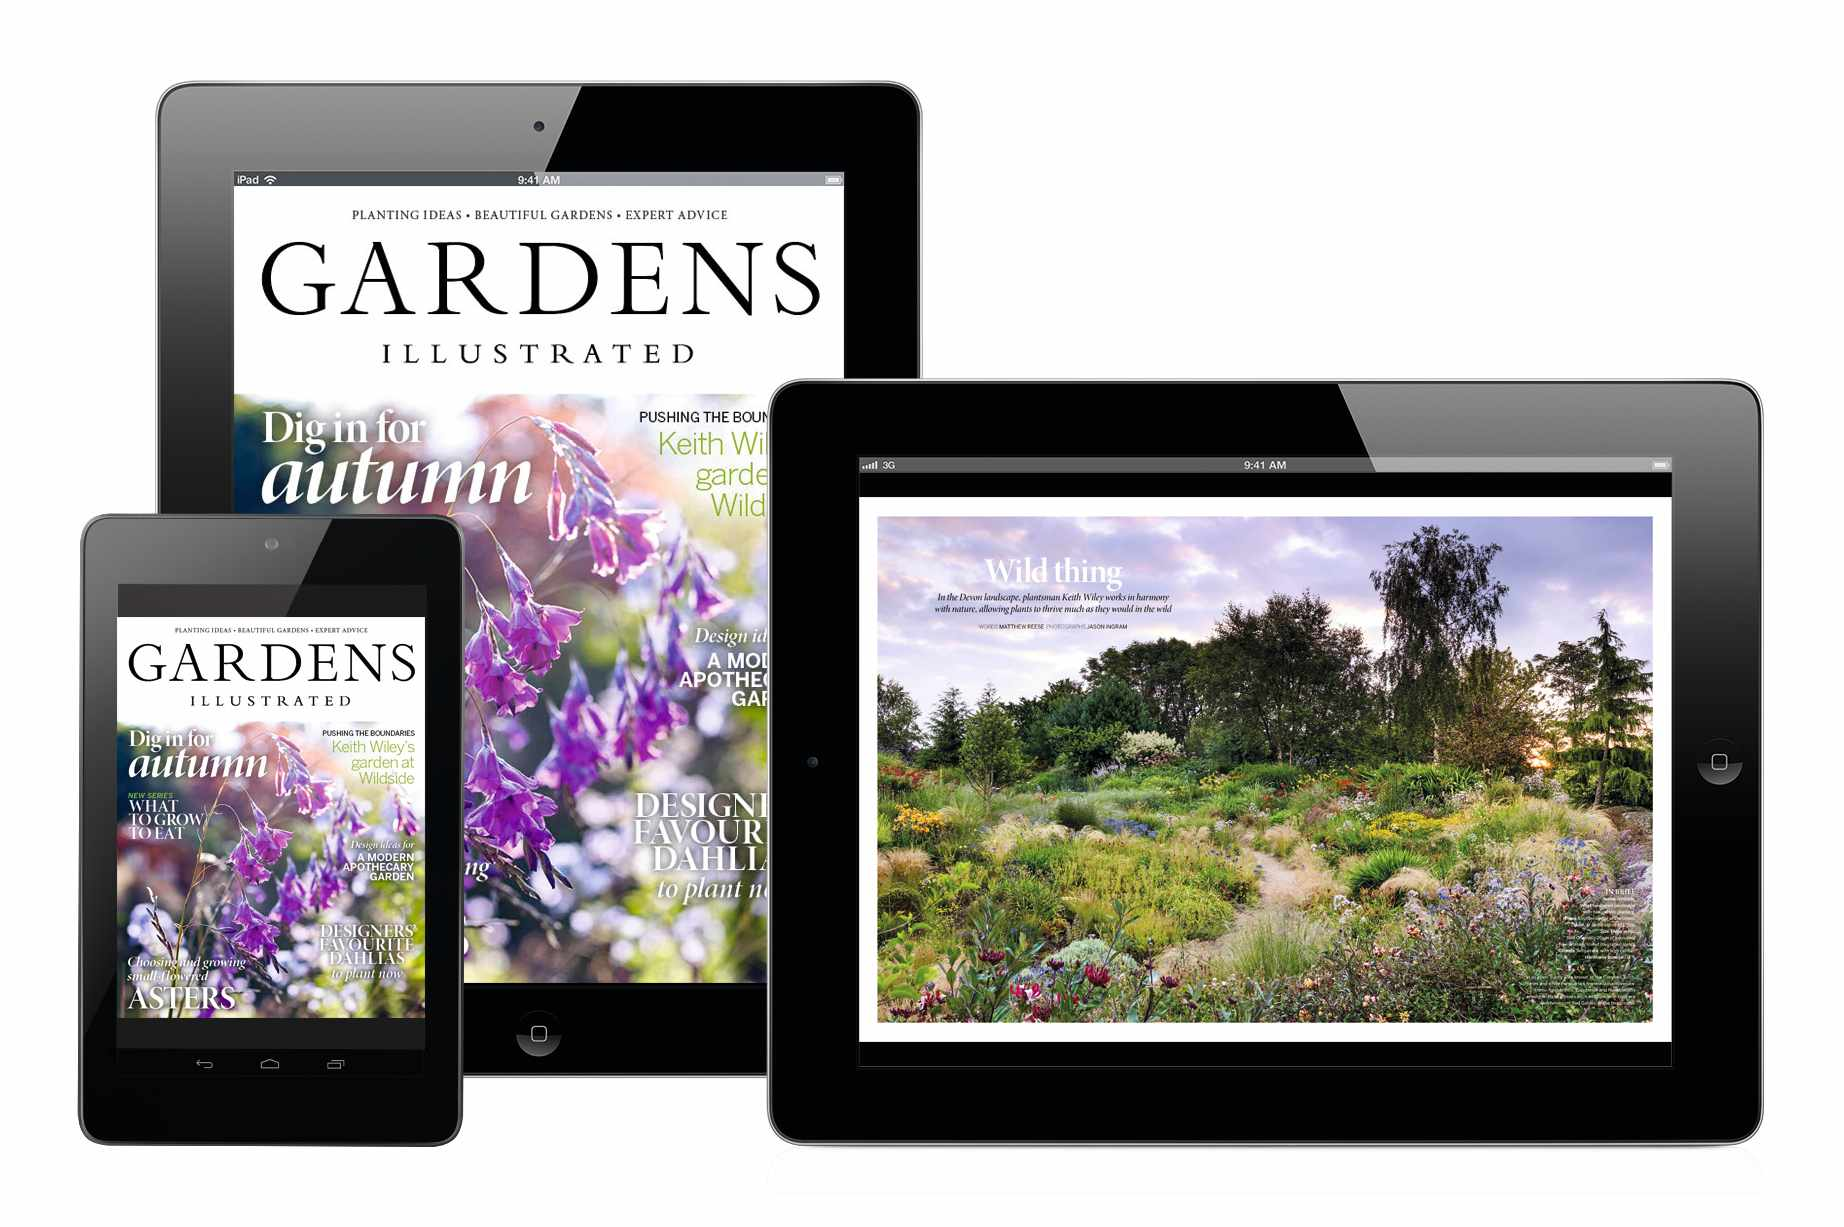 October's Gardens Illustrated